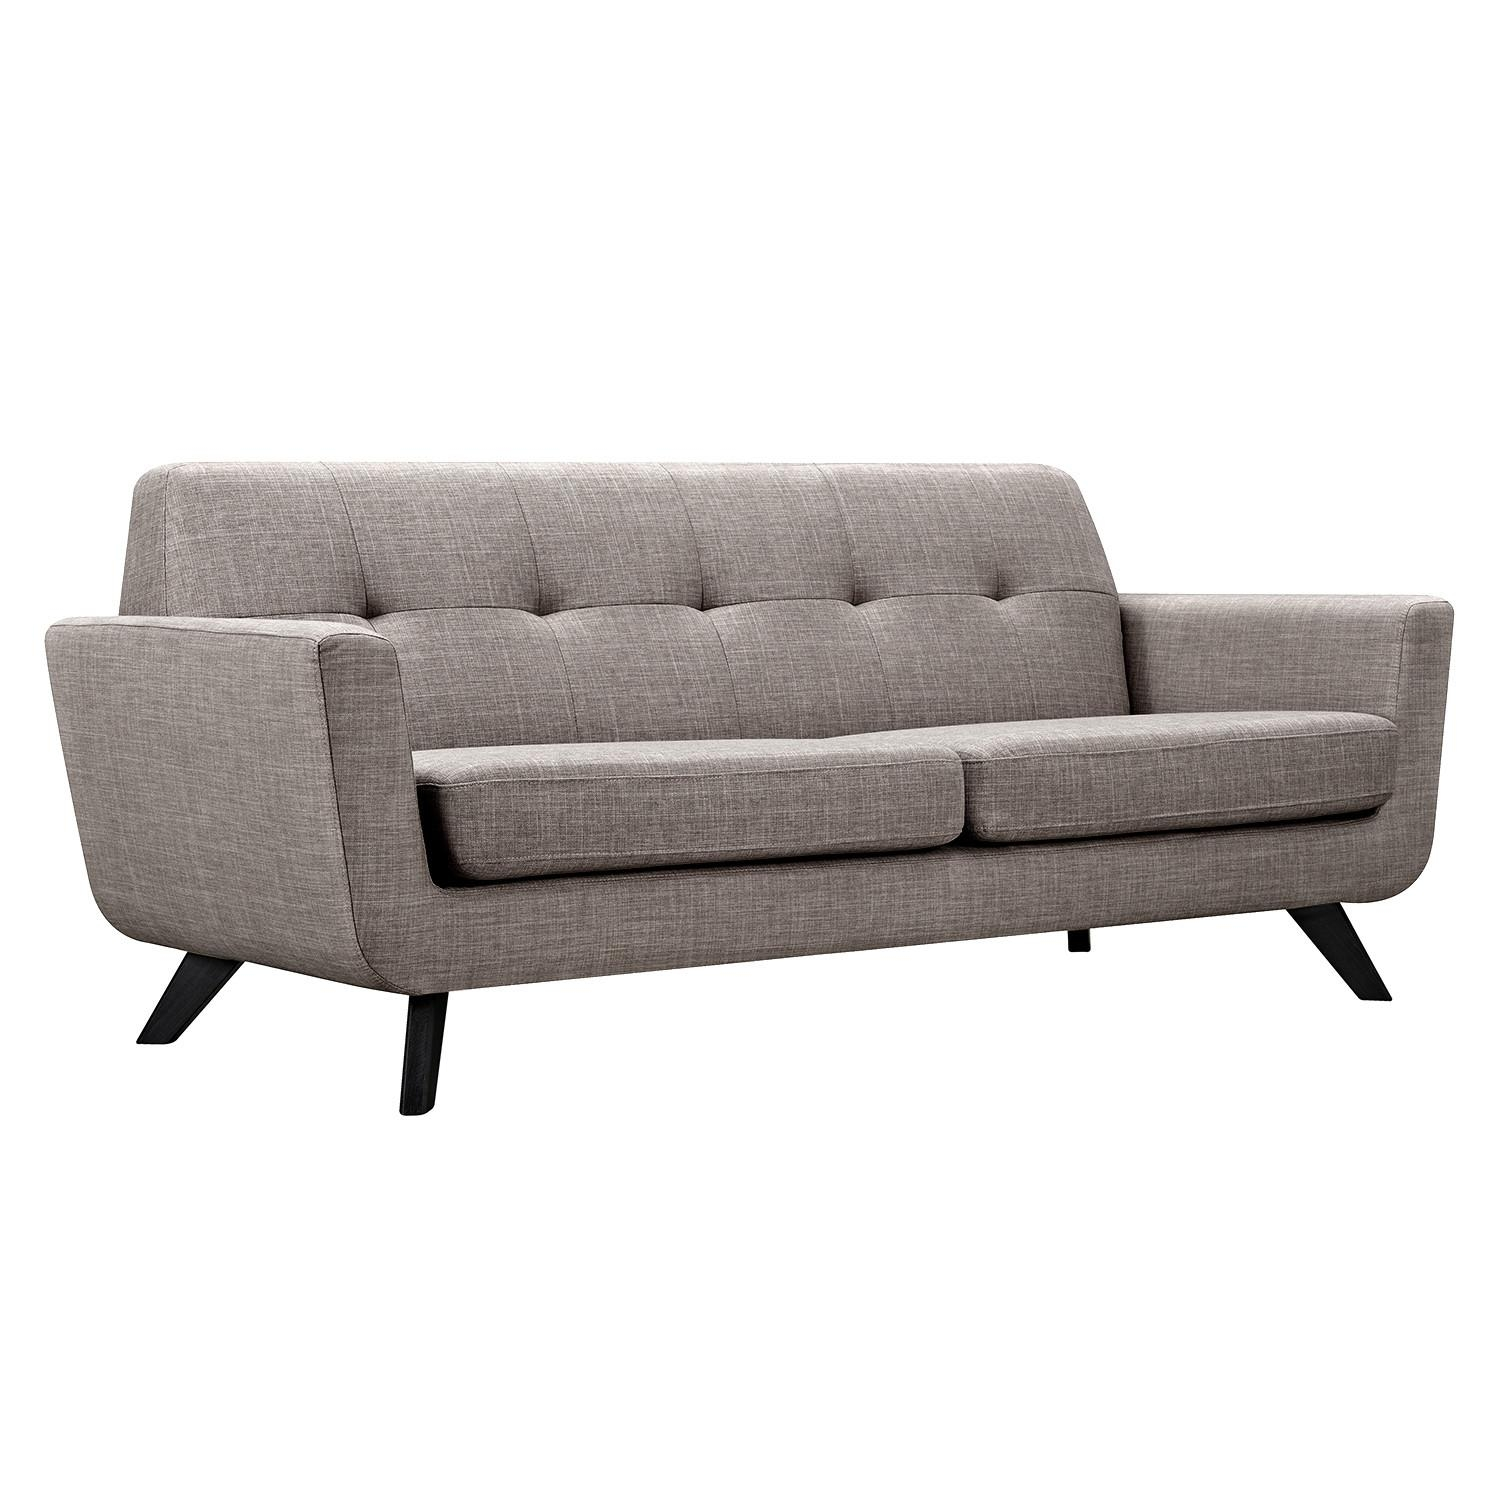 Dania Recliner & Leather Sofa Dania Leather Sectional Sofa